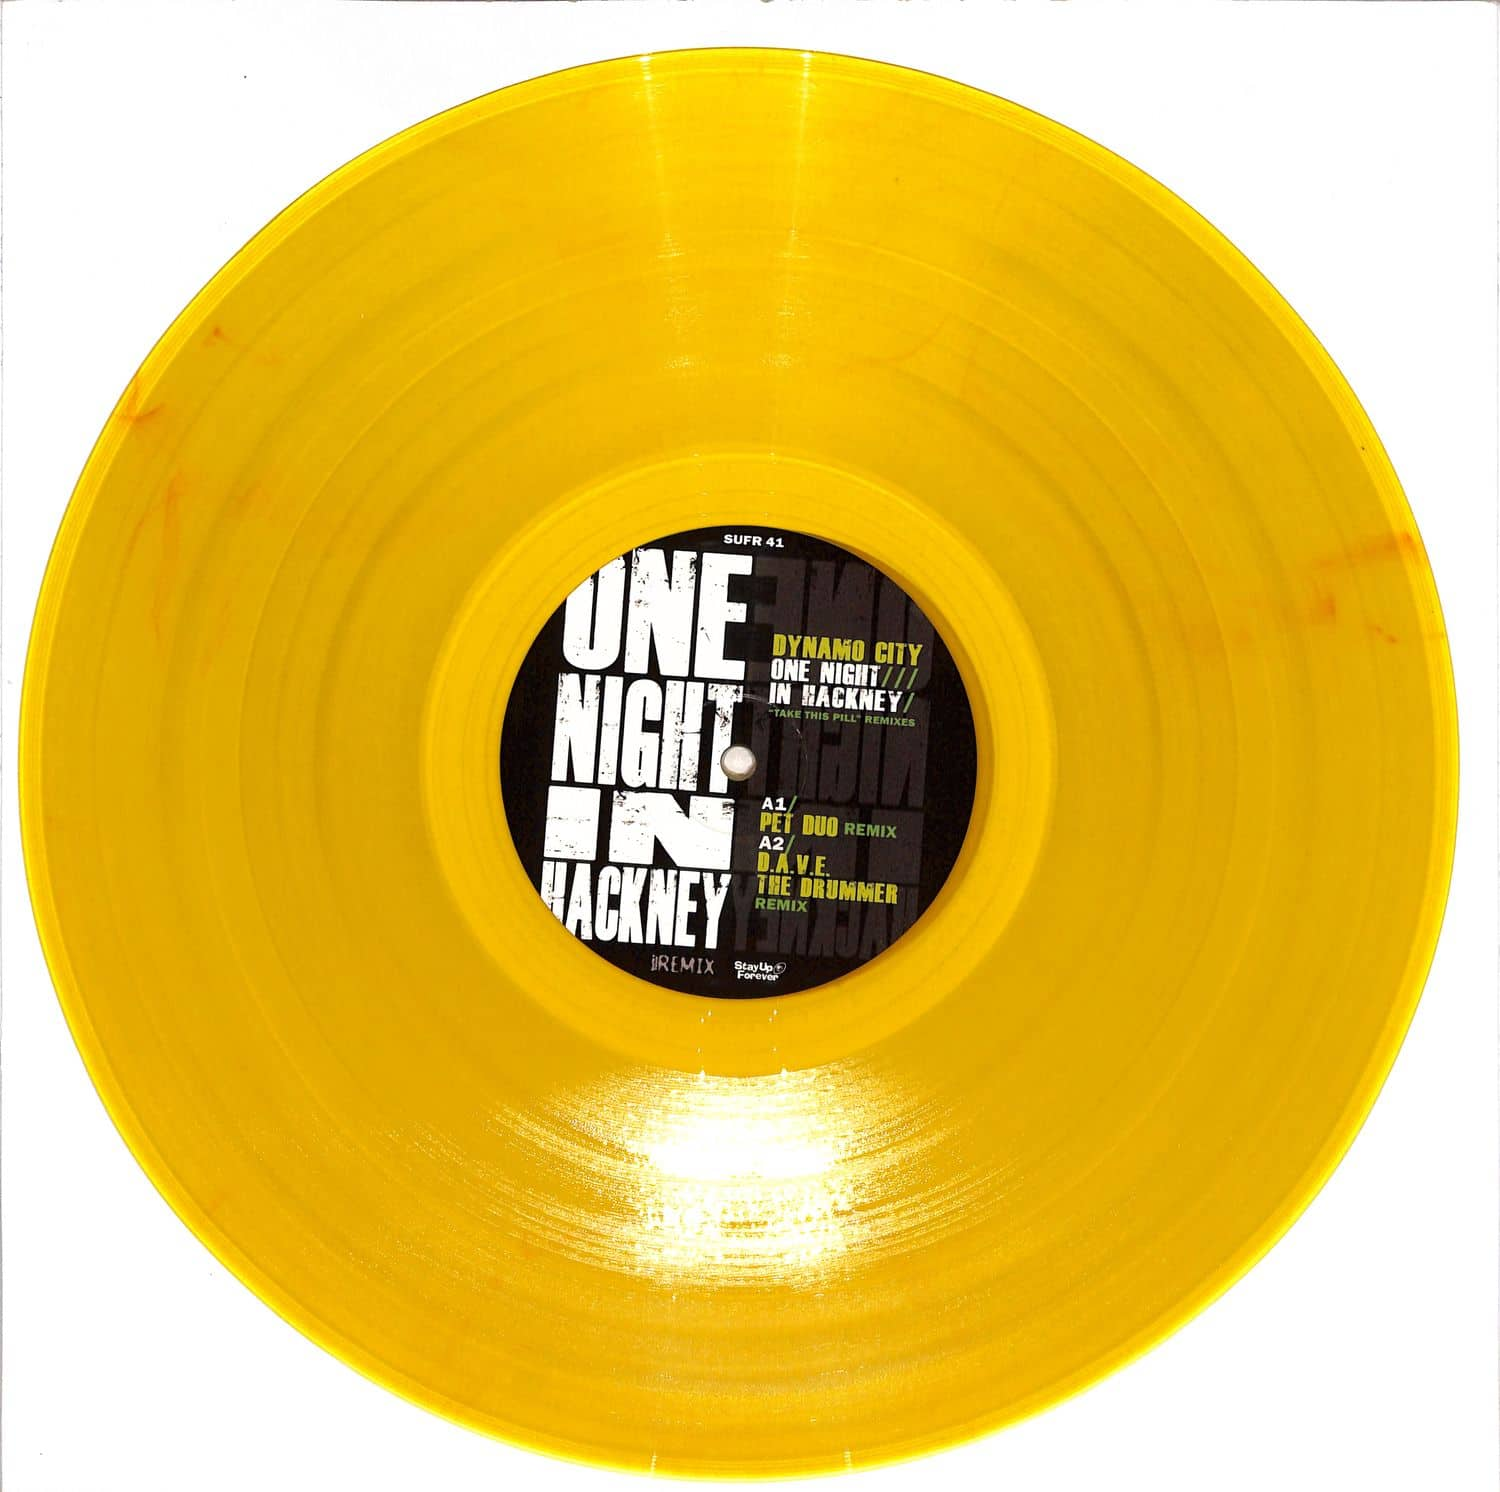 Dynamo City - ONE NIGHT IN HACKNEY - TAKE THIS PILL REMIXES